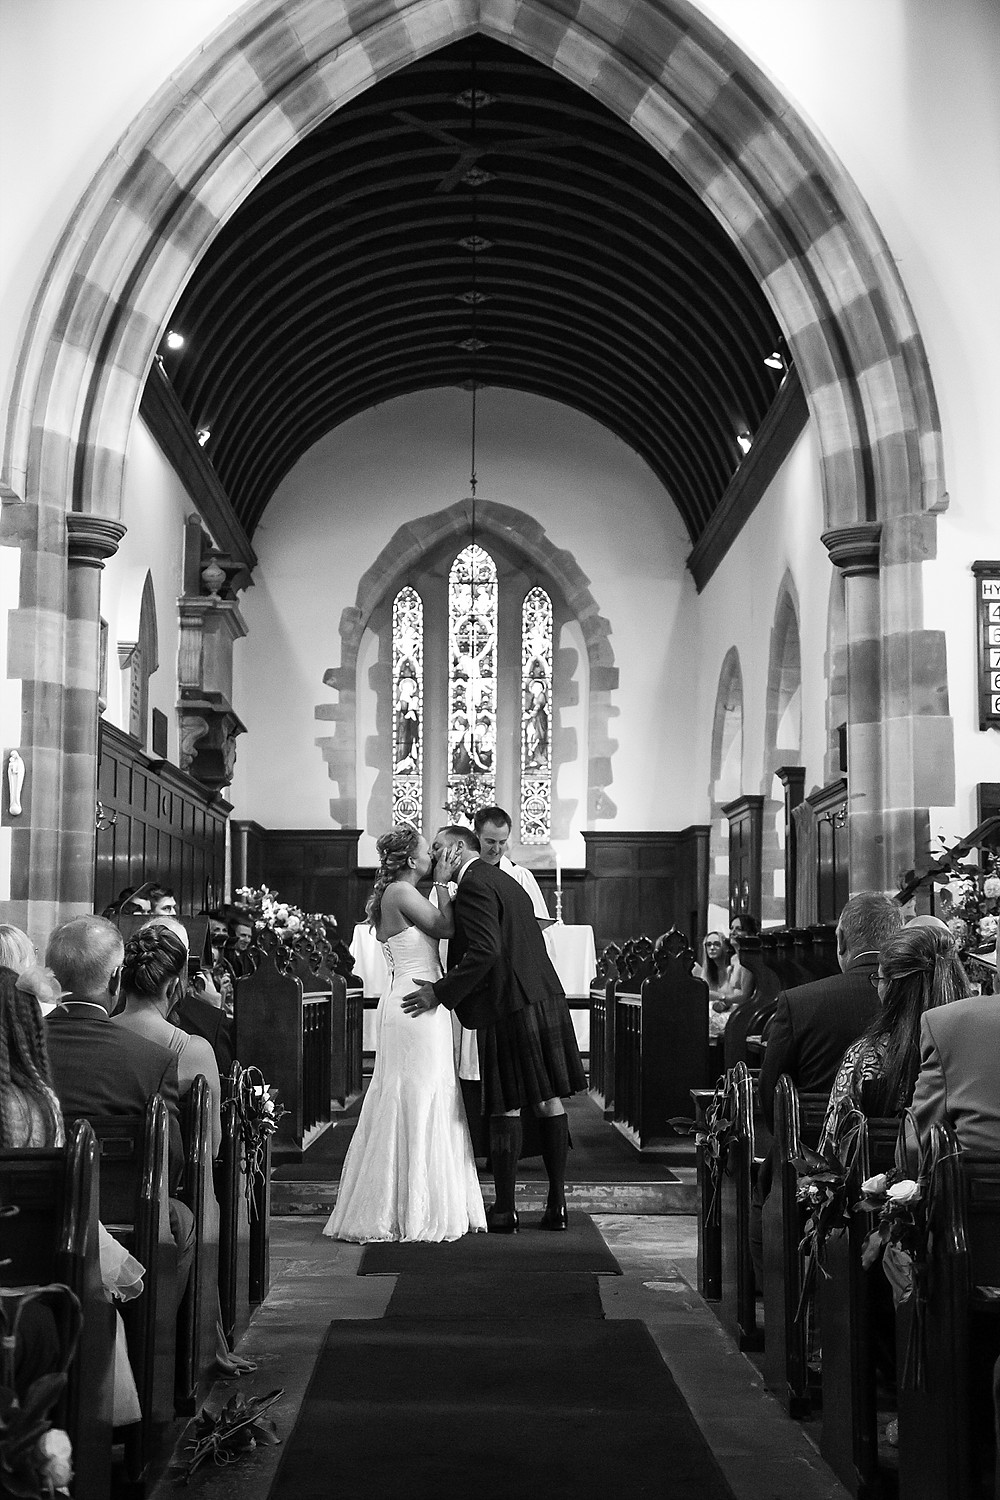 Wedding ceremony at St Mary's Church in Rugby, Warwickshire